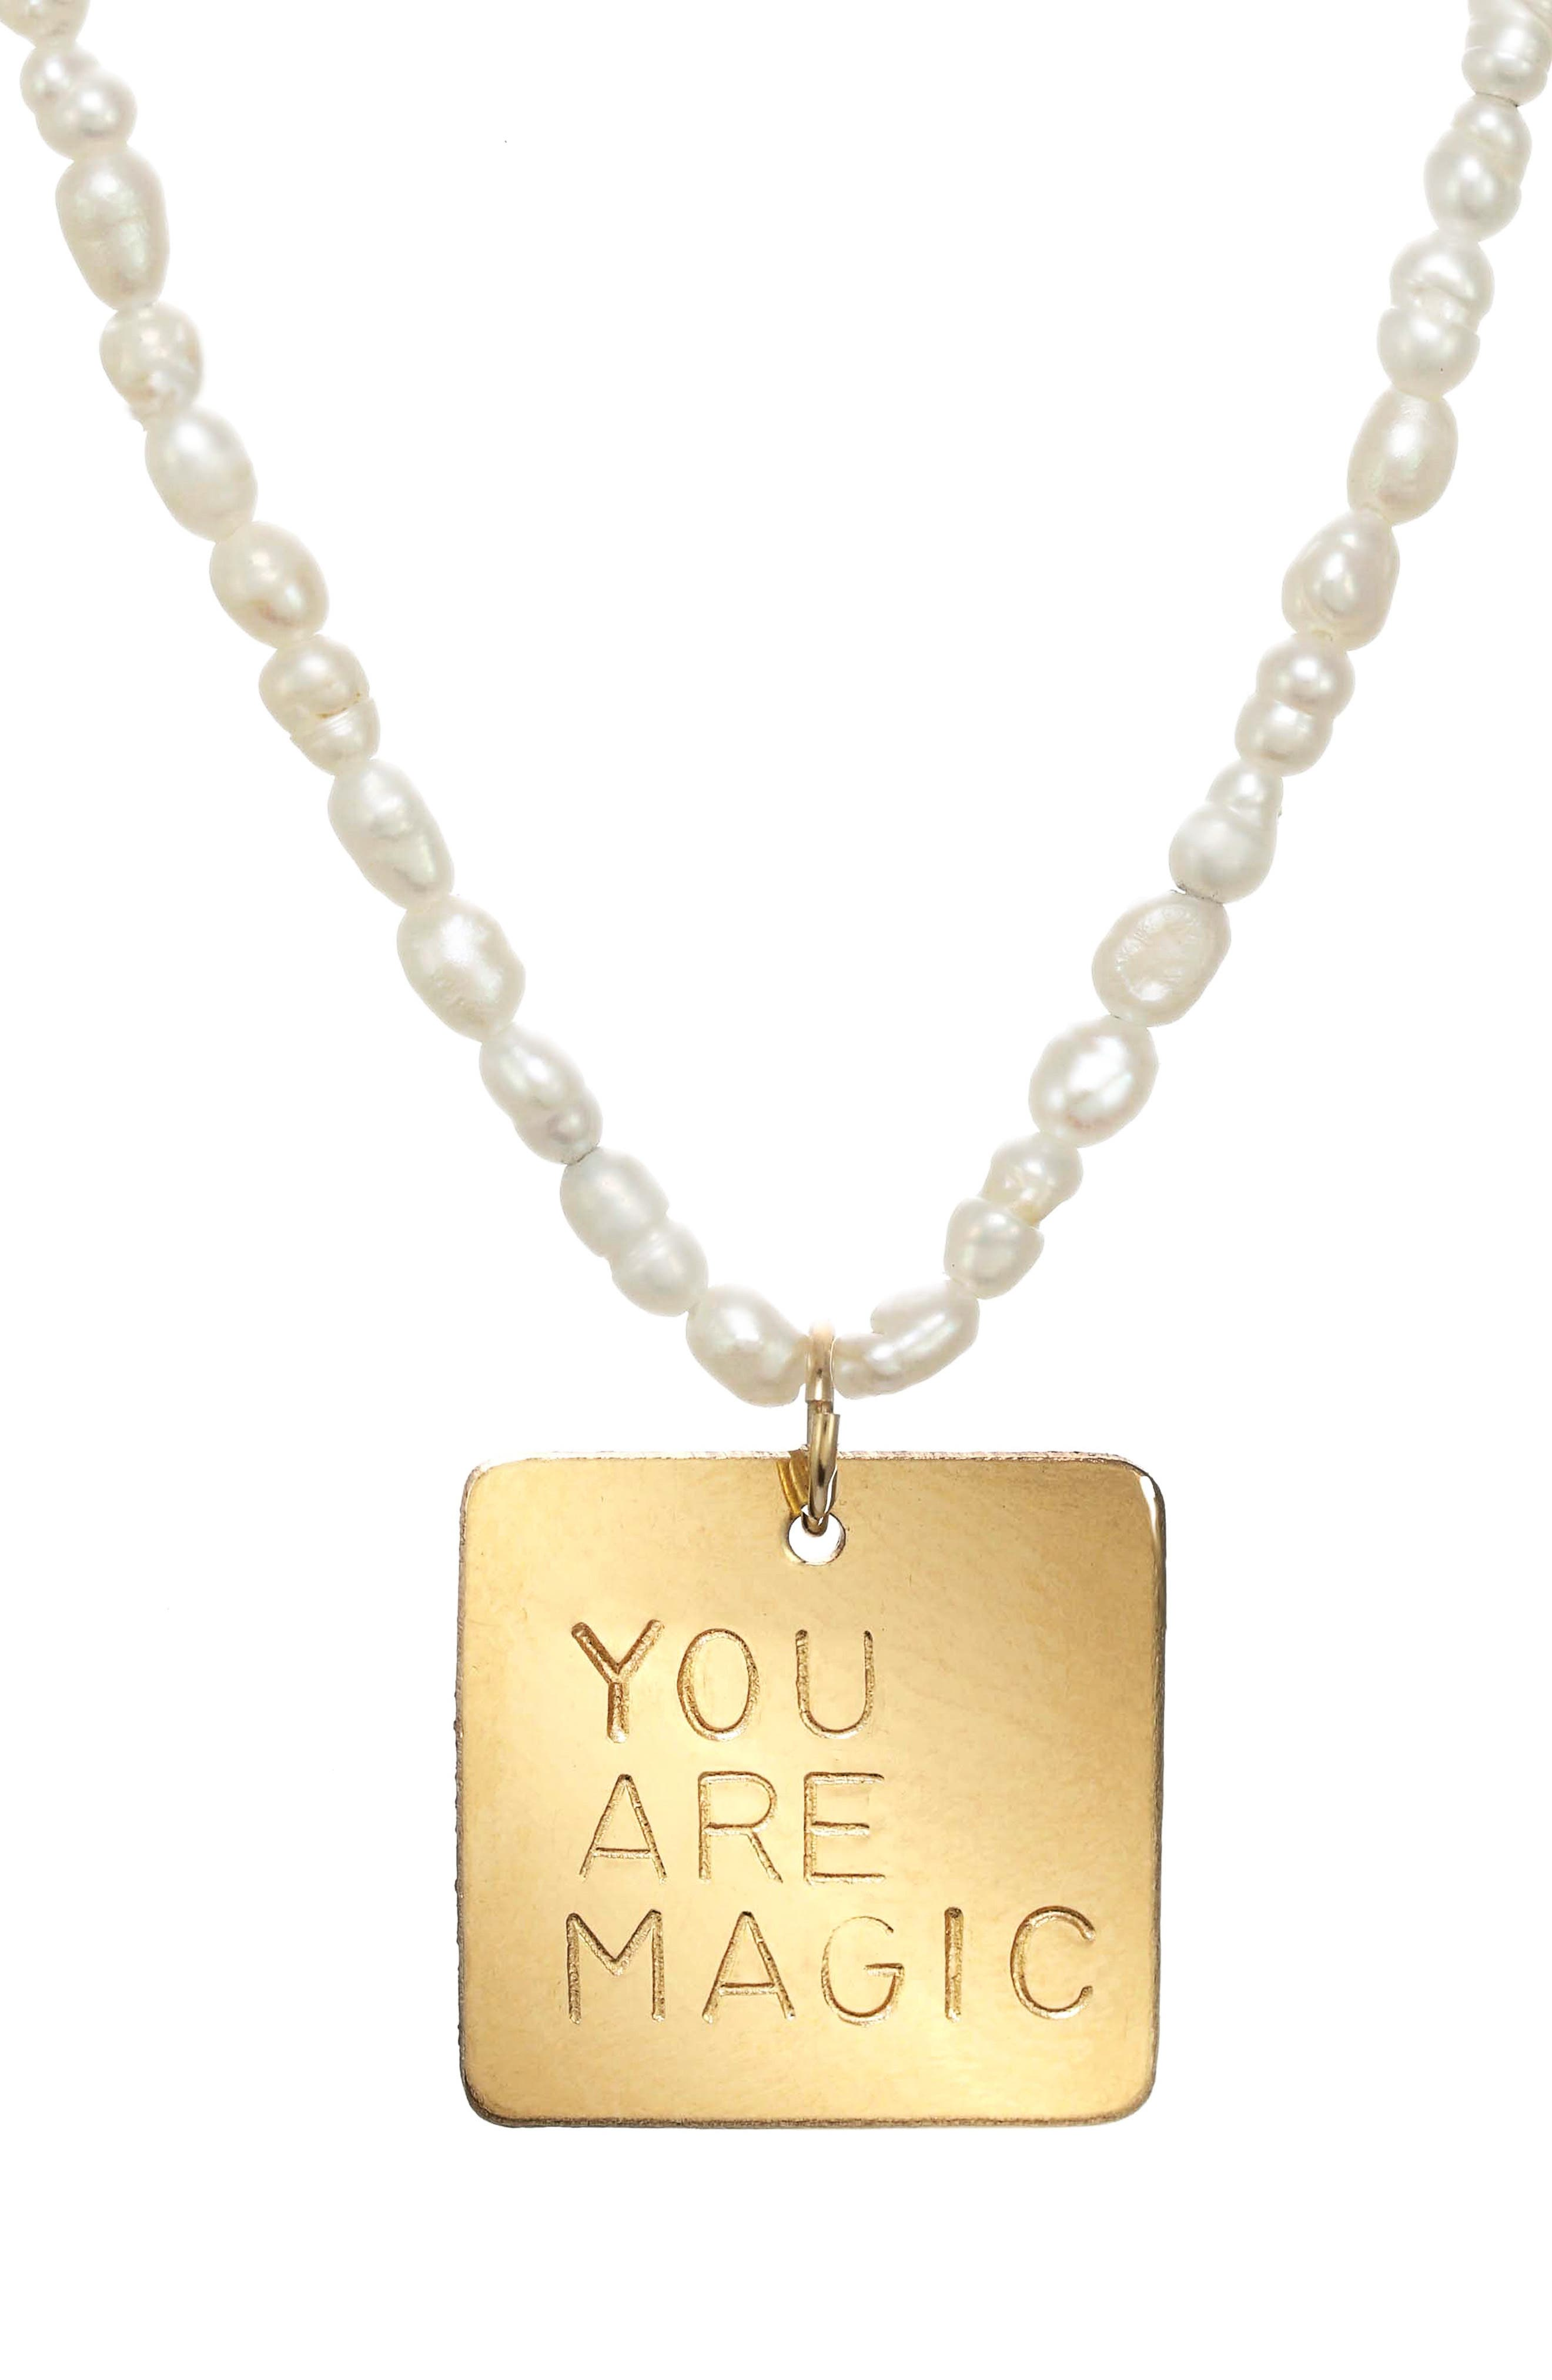 You Are Magic Genuine Pearl Bead Pendant Necklace